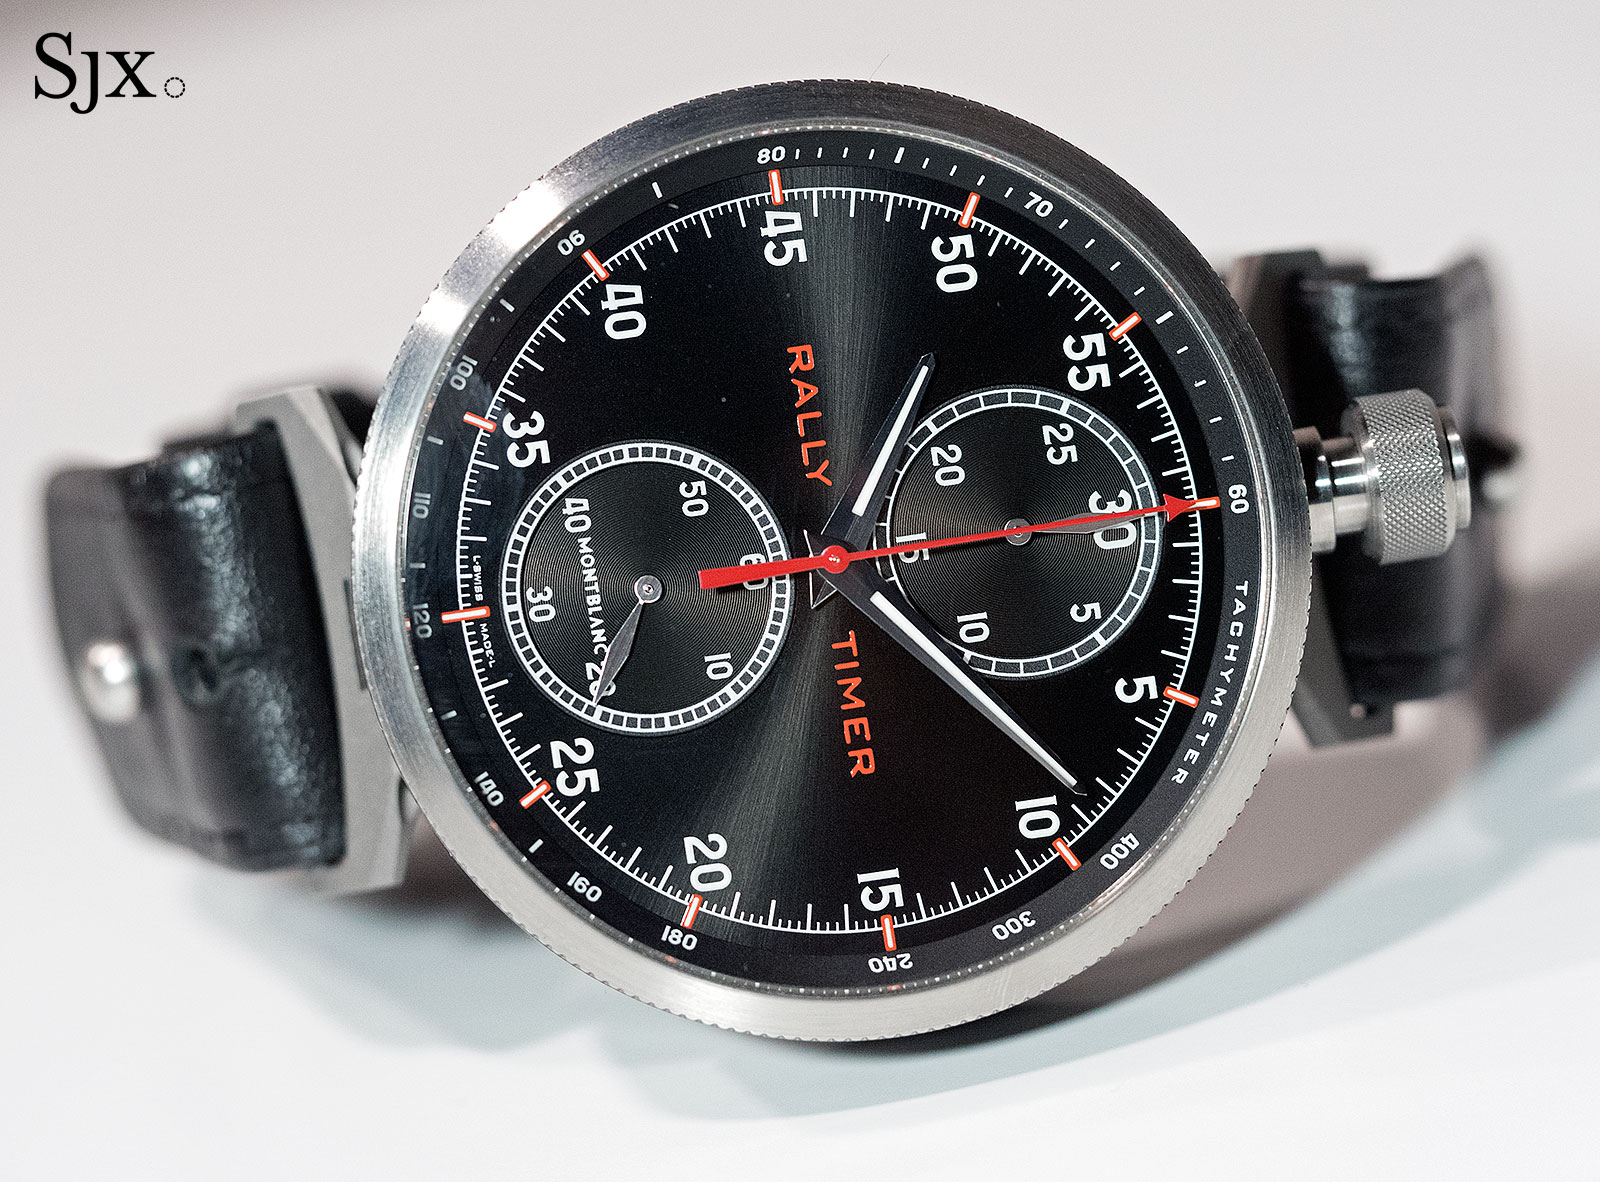 Montblanc TimeWalker Chronograph Rally Timer Counter-2